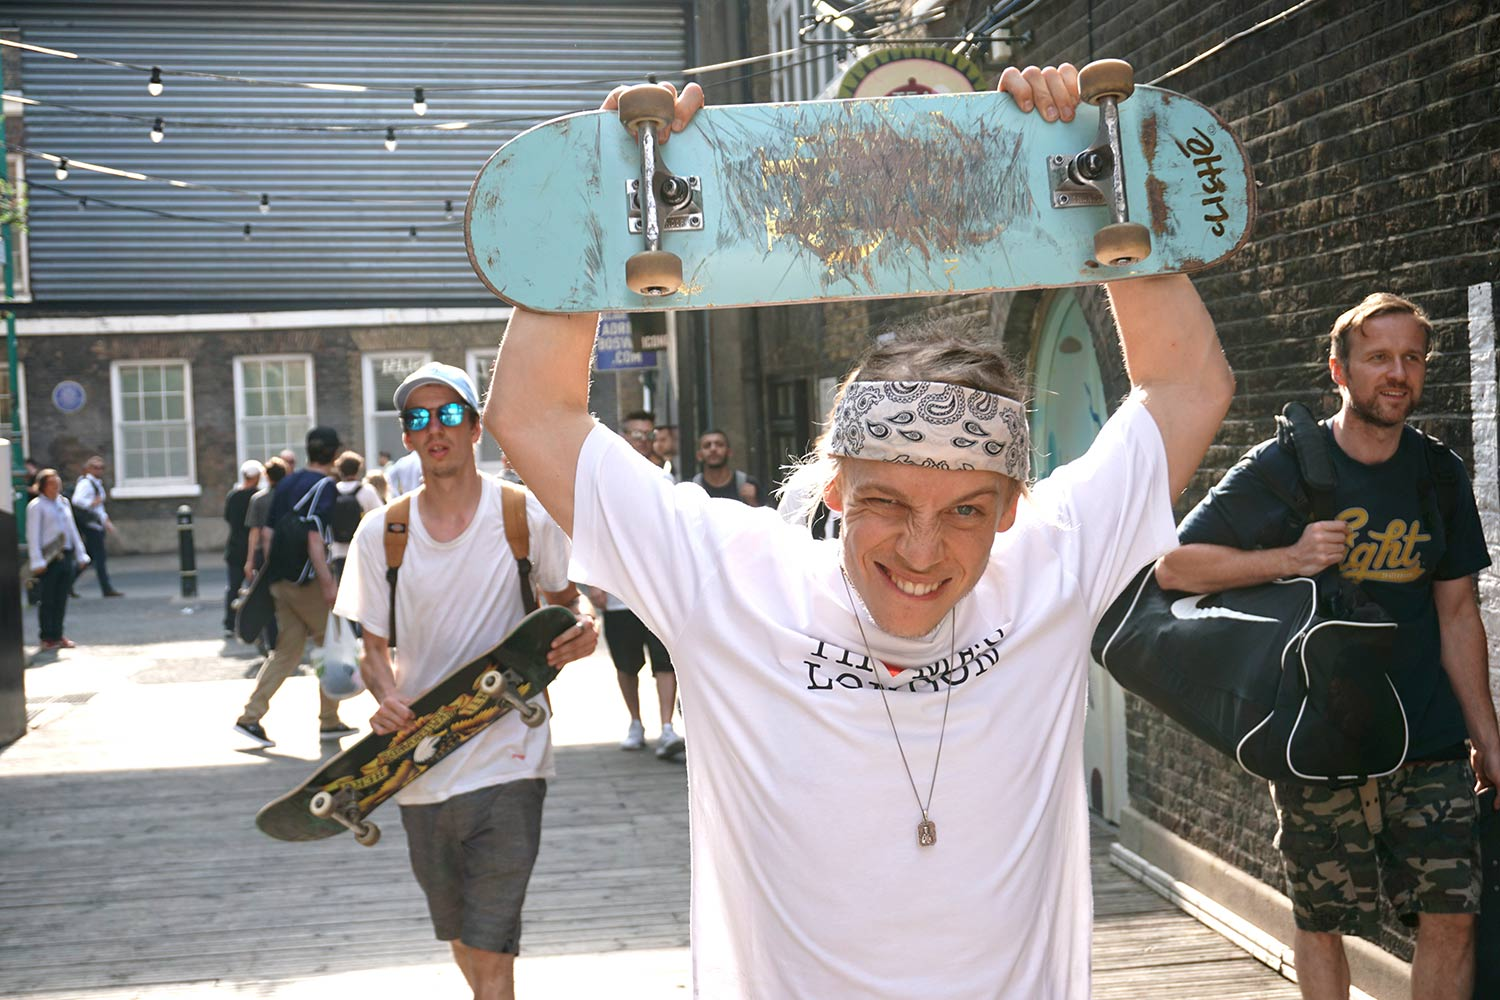 Go Skateboarding Day 2017, Slam City Skates, Nike SB, Old Truman Brewery, Brick Lane, Spitalfields, East London